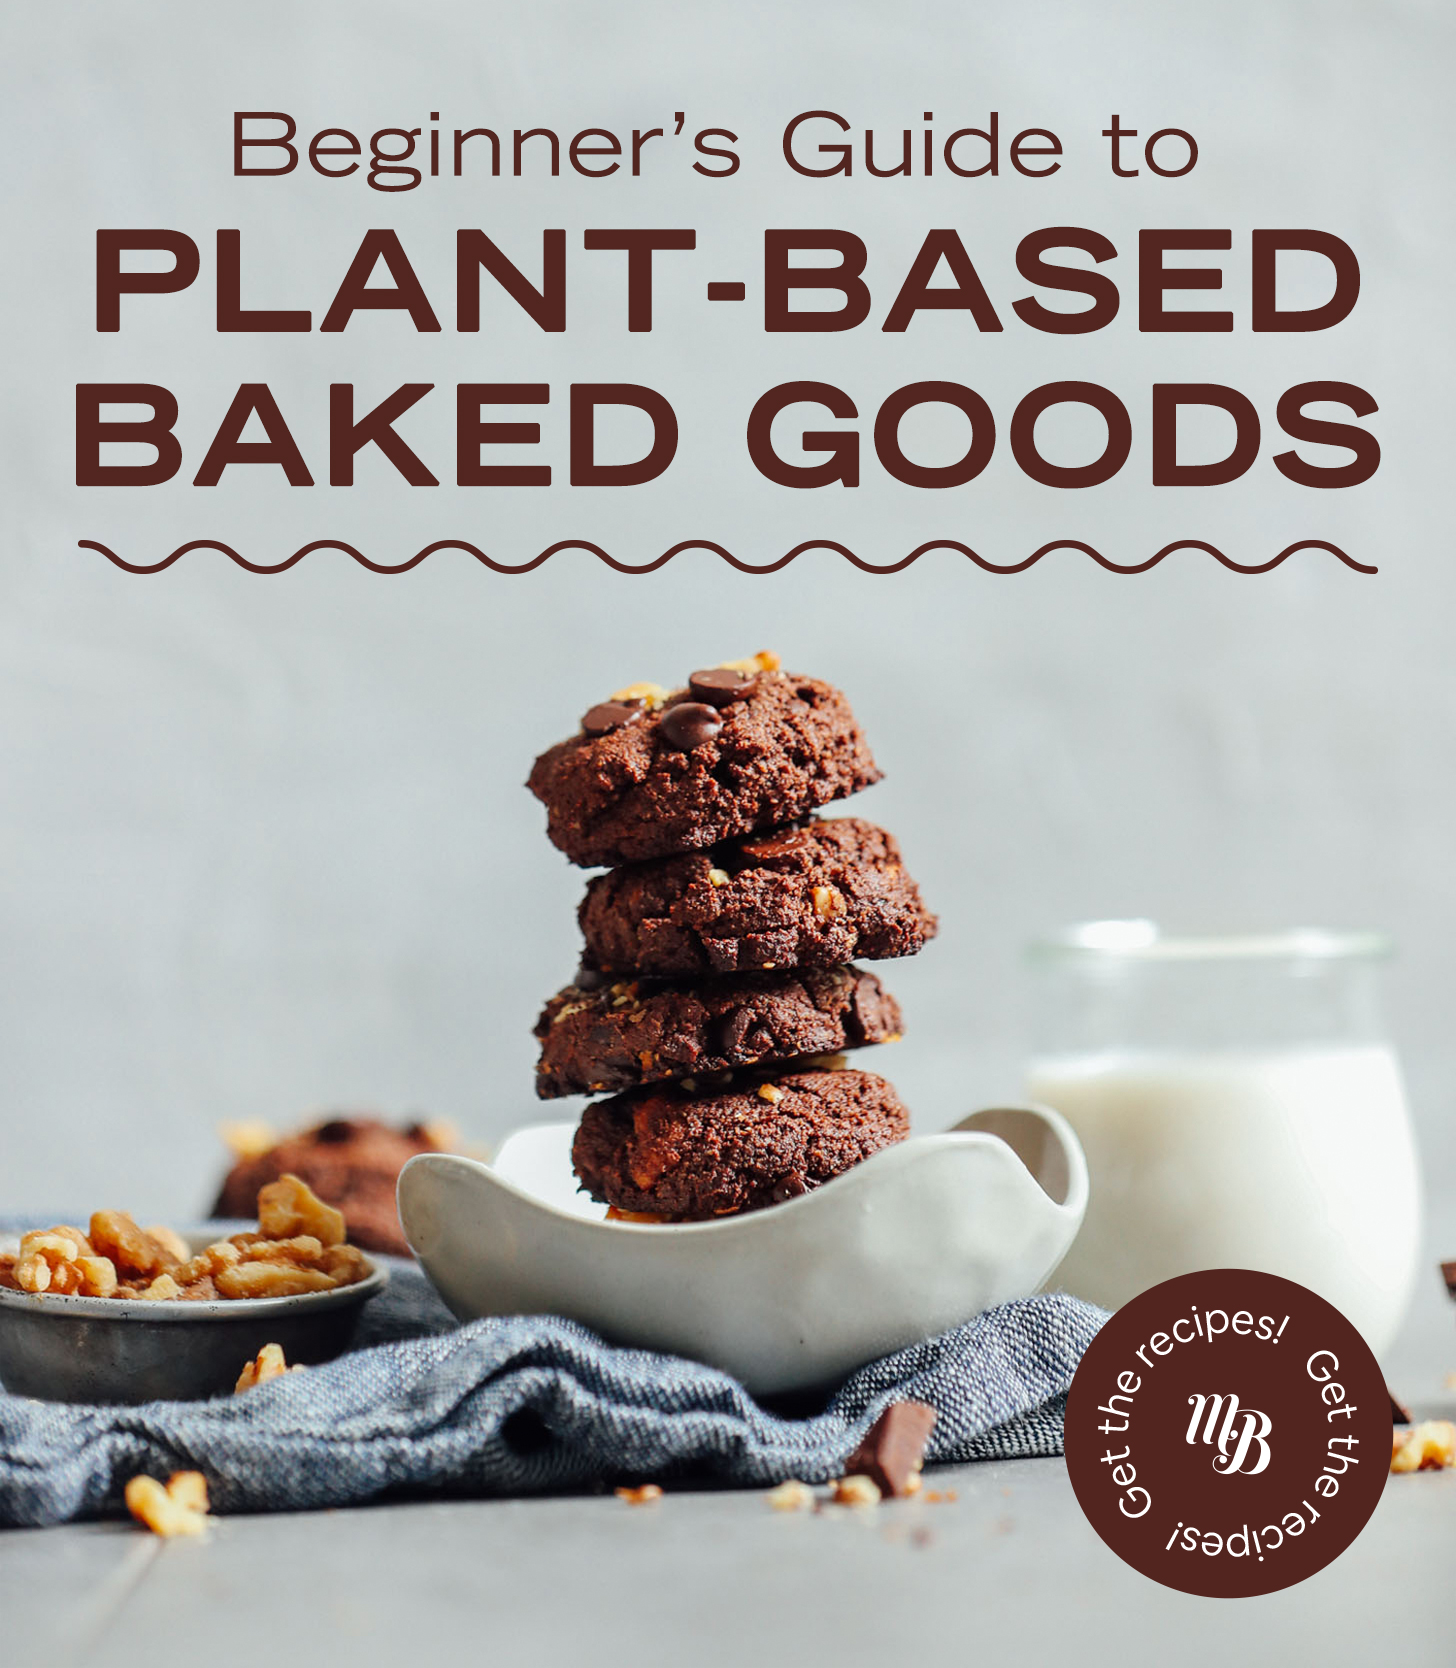 Bowl with a stack of cookies overlaid with texting saying Beginner's Guide to Plant-Based Baked Goods